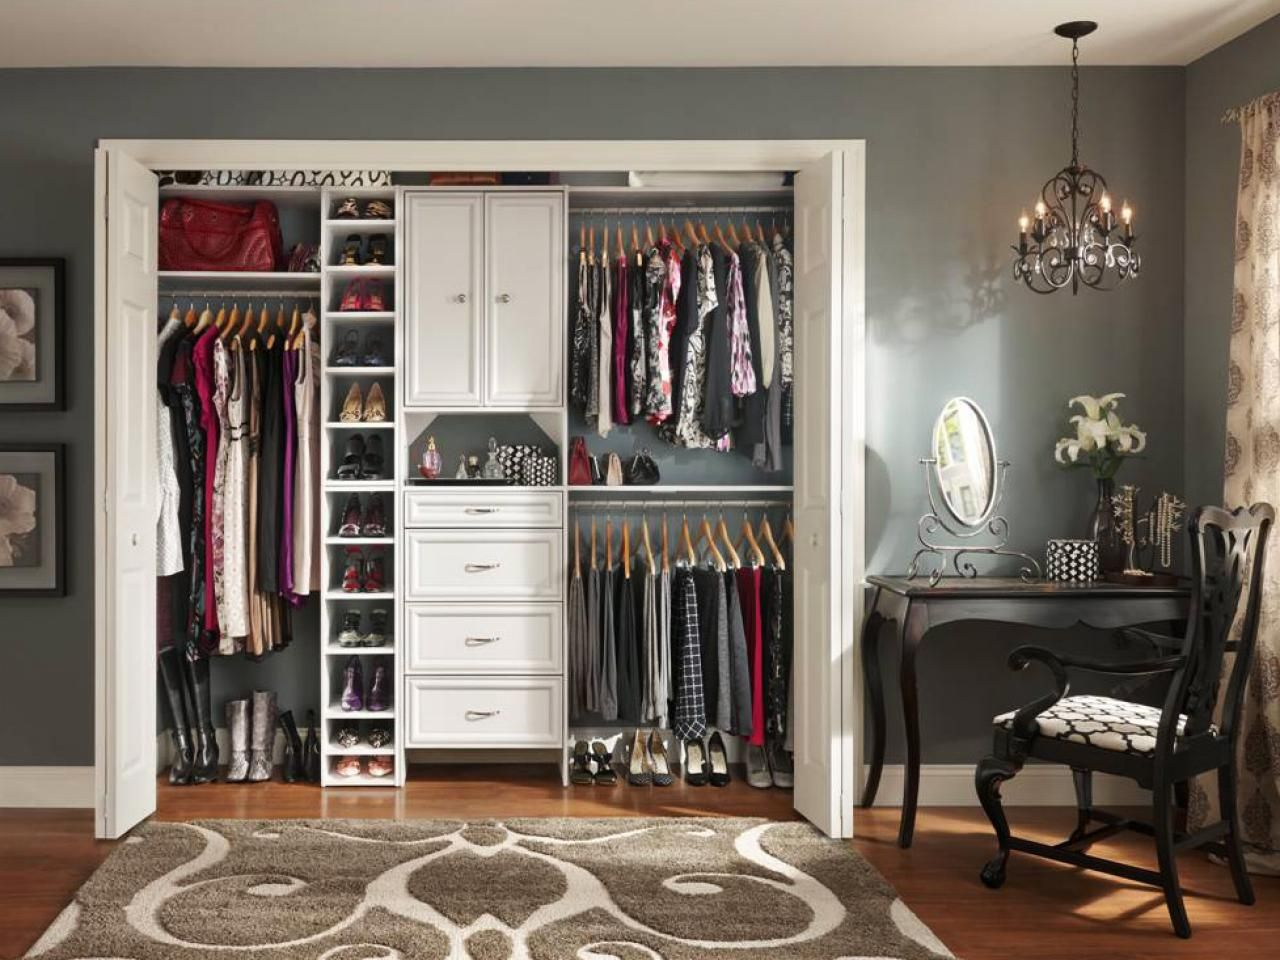 Explore Small Closet Design, Small Closets, And More!